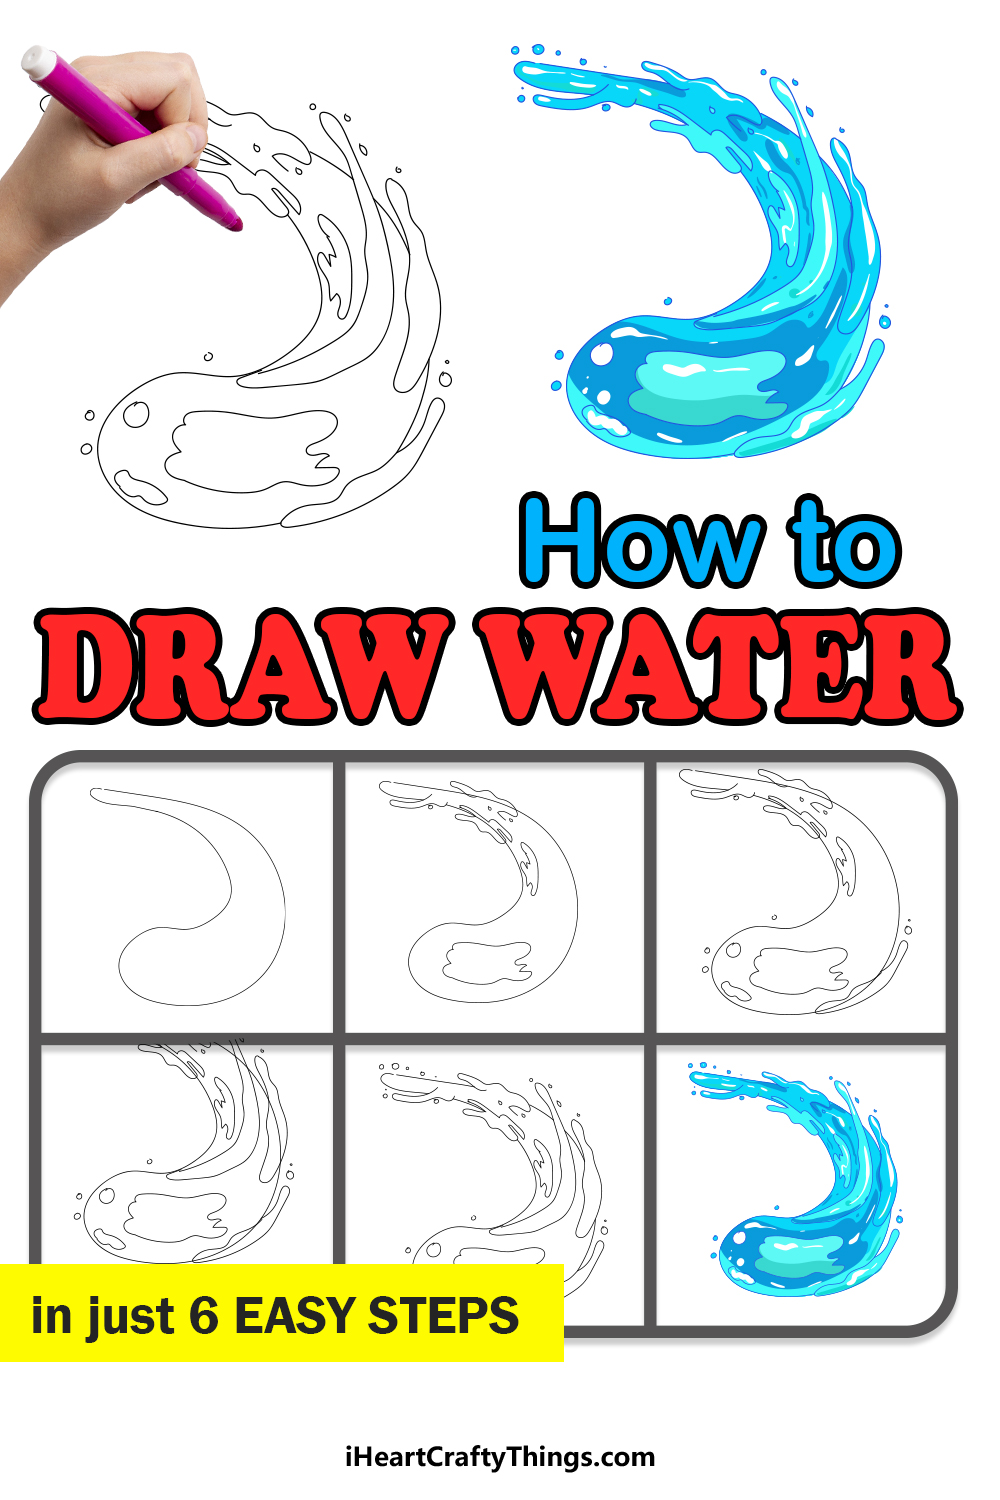 how to draw water in 6 easy steps